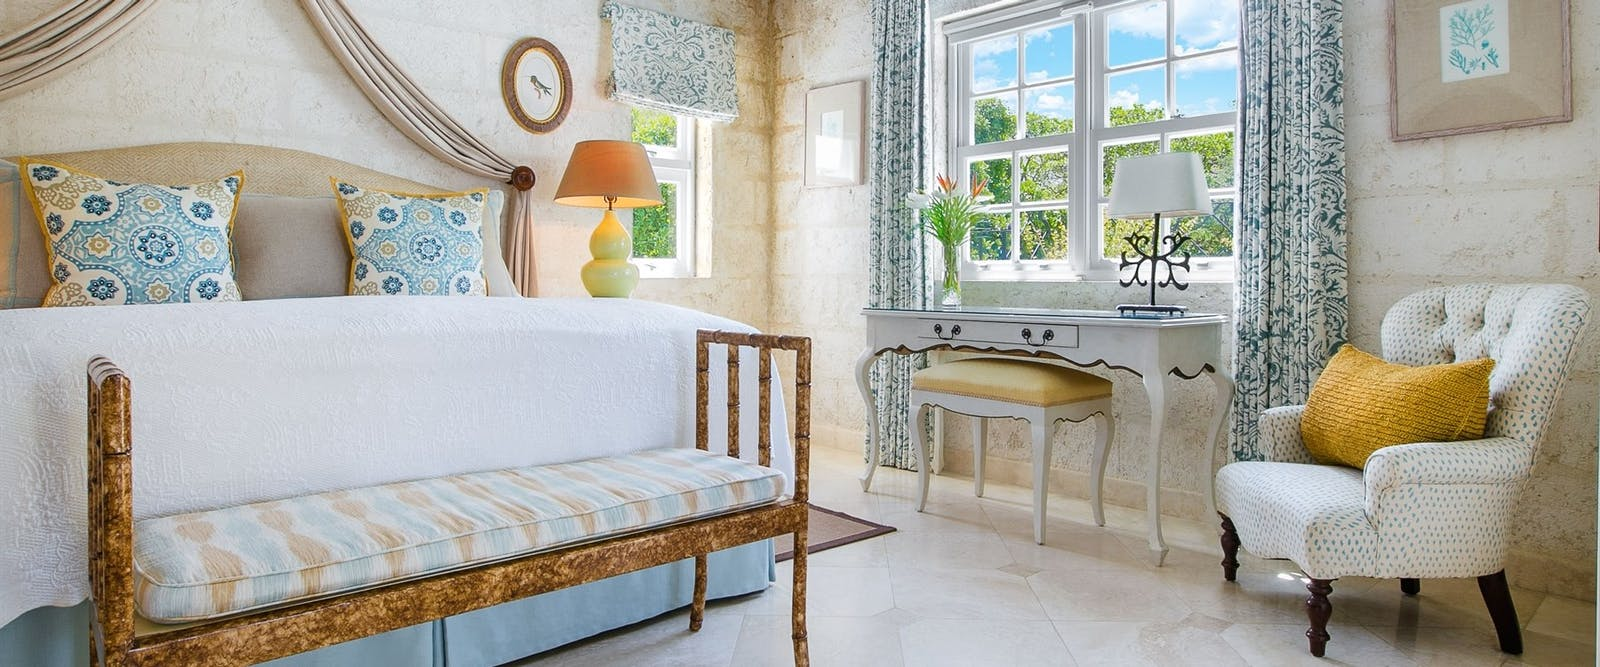 Luxury Plantation Suite Bedroom at Coral Reef Club, Barbados